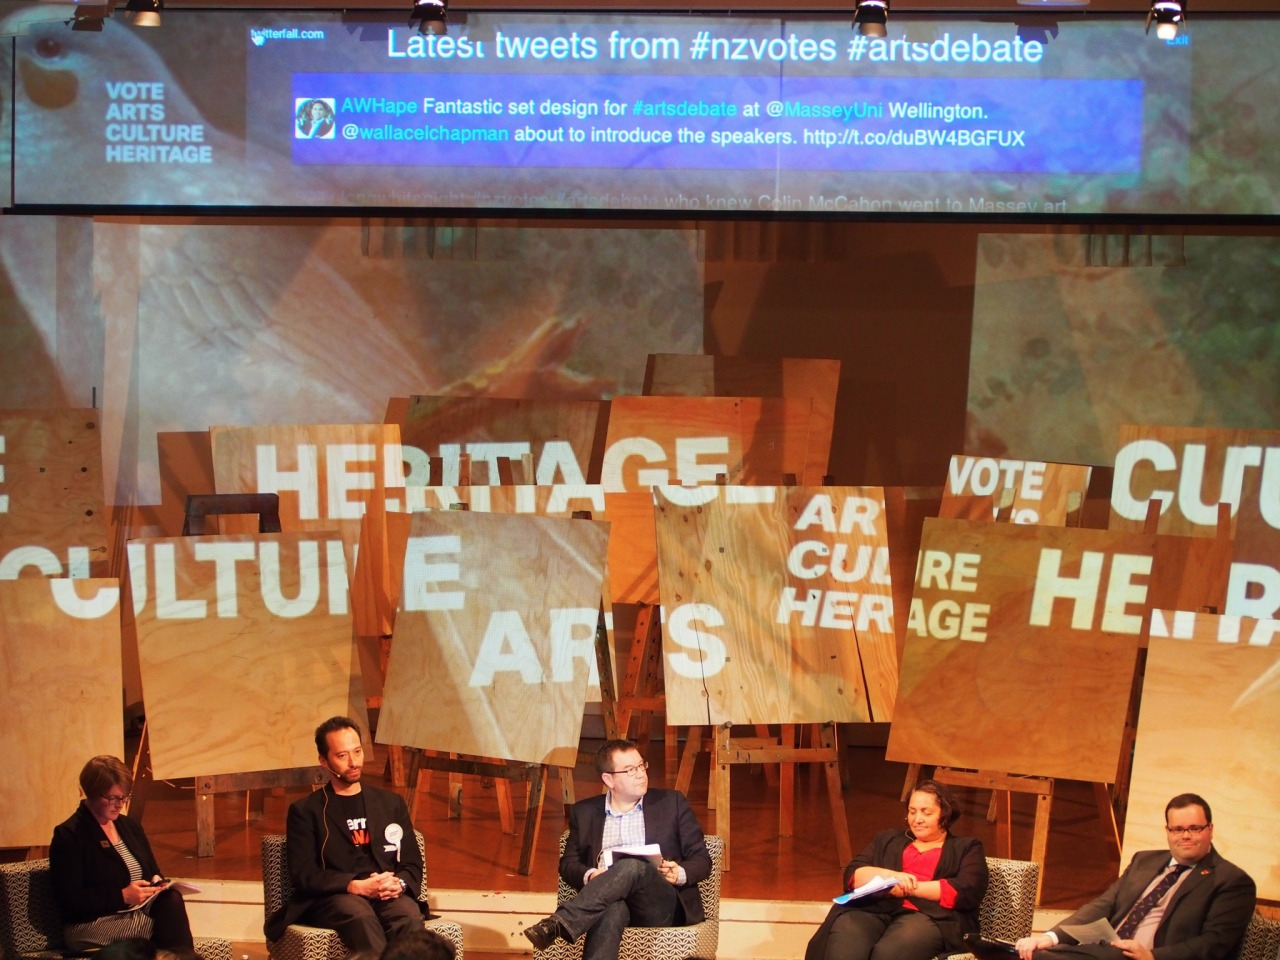 Figure 15. Arts debate with projected backdrop. Example of collection image reuse